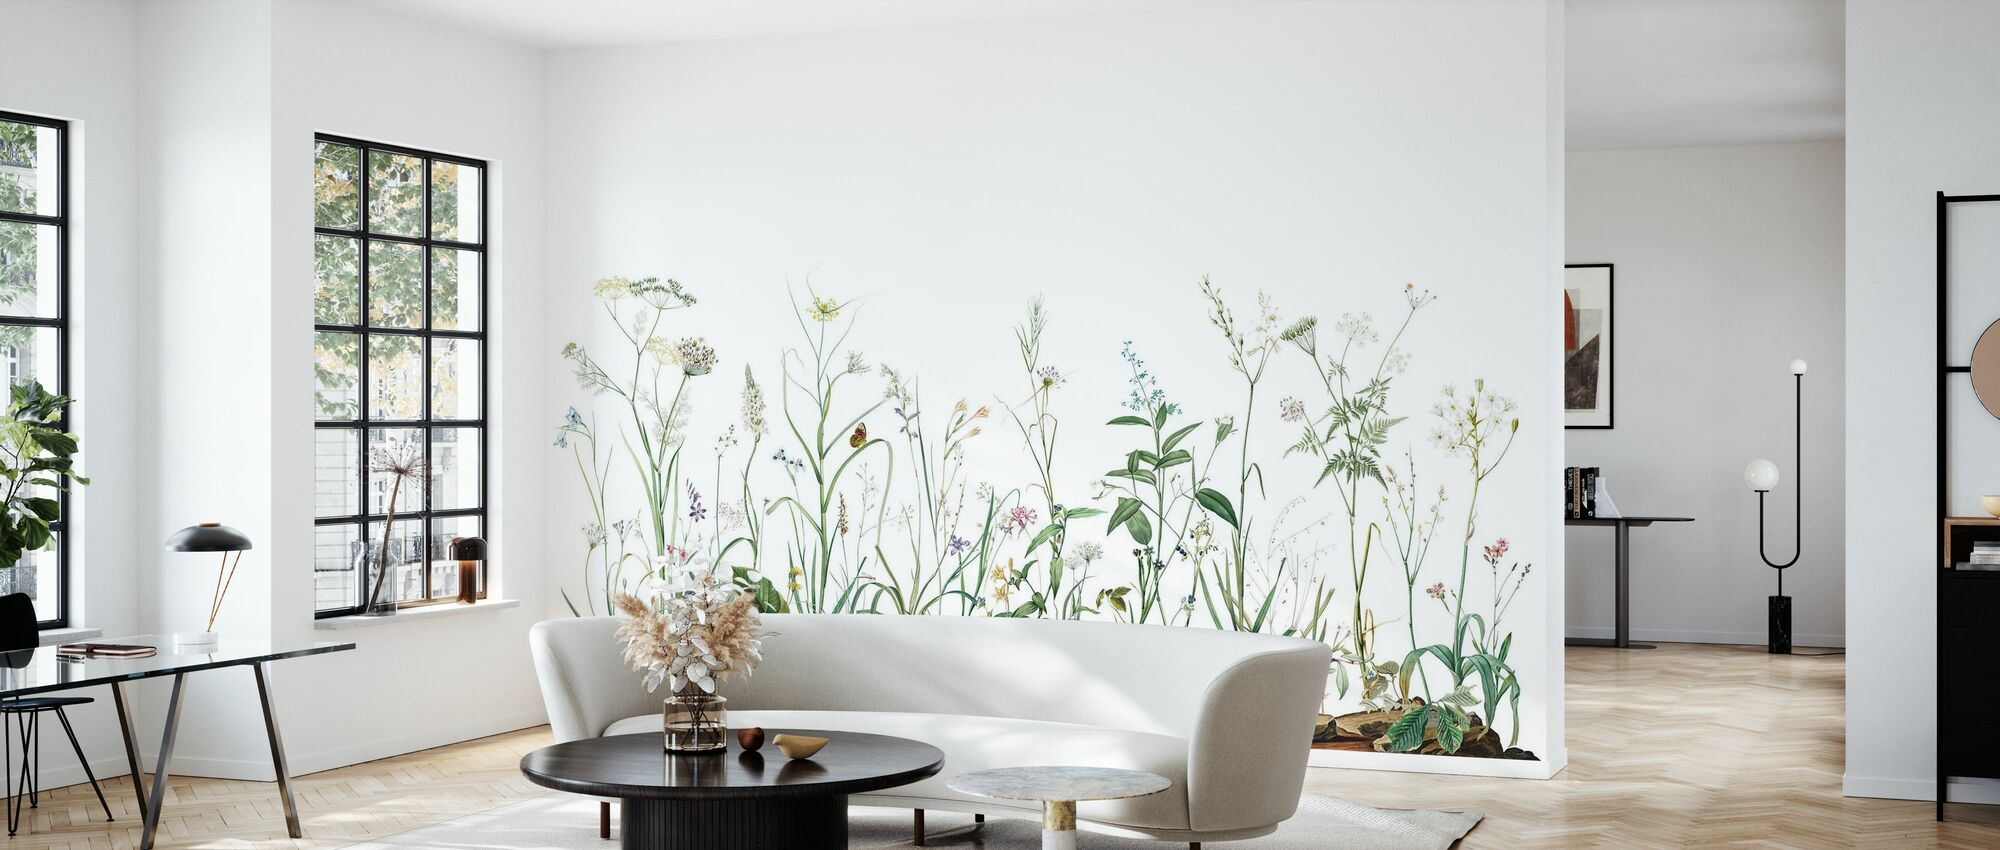 Midsummer Trail - Crisp White - Wallpaper - Living Room